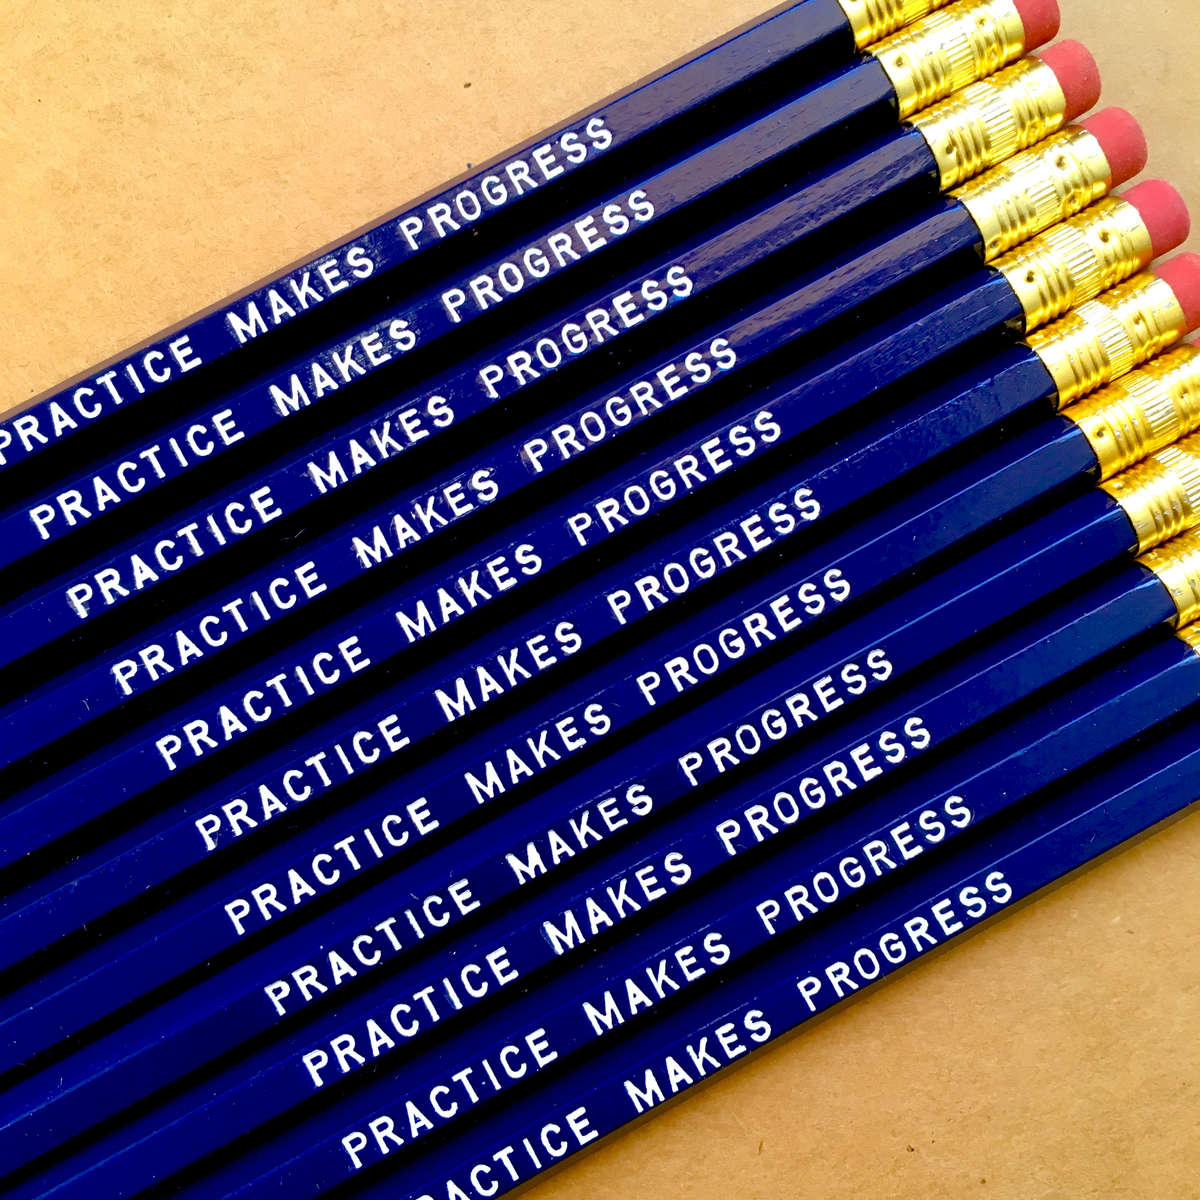 purchase herepractice makes progress... strive for growth, not perfection.set of six imprinted hexagon pencils // blue pencils + white textunsharpened + packaged in a sealed cellophane sleeve (ready for gift giving)fantastic gift idea for teachers + students + anyone, really... especially yourself!